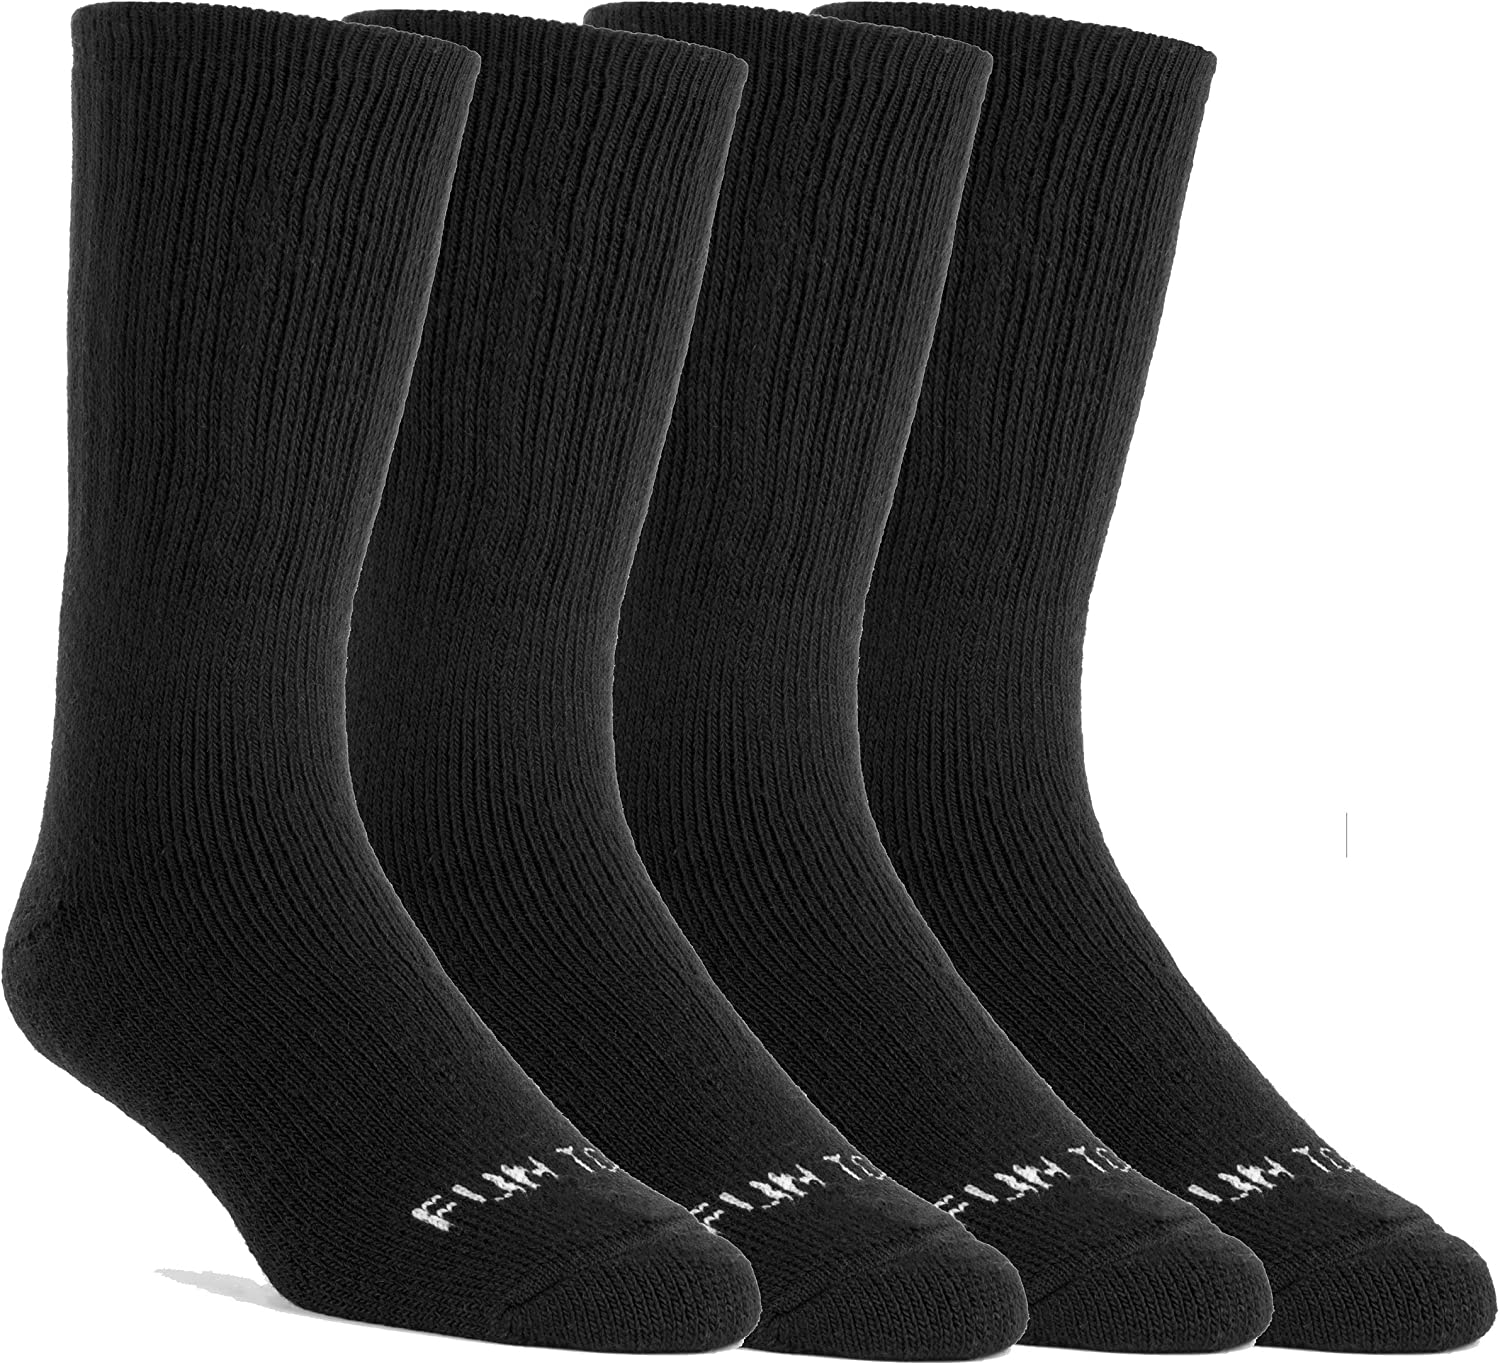 FUN TOES Women 60% Merino Wool Thermal Solid Color Socks 4 Pirs Ultra Warm and Cozy Arch Support and Cushioning